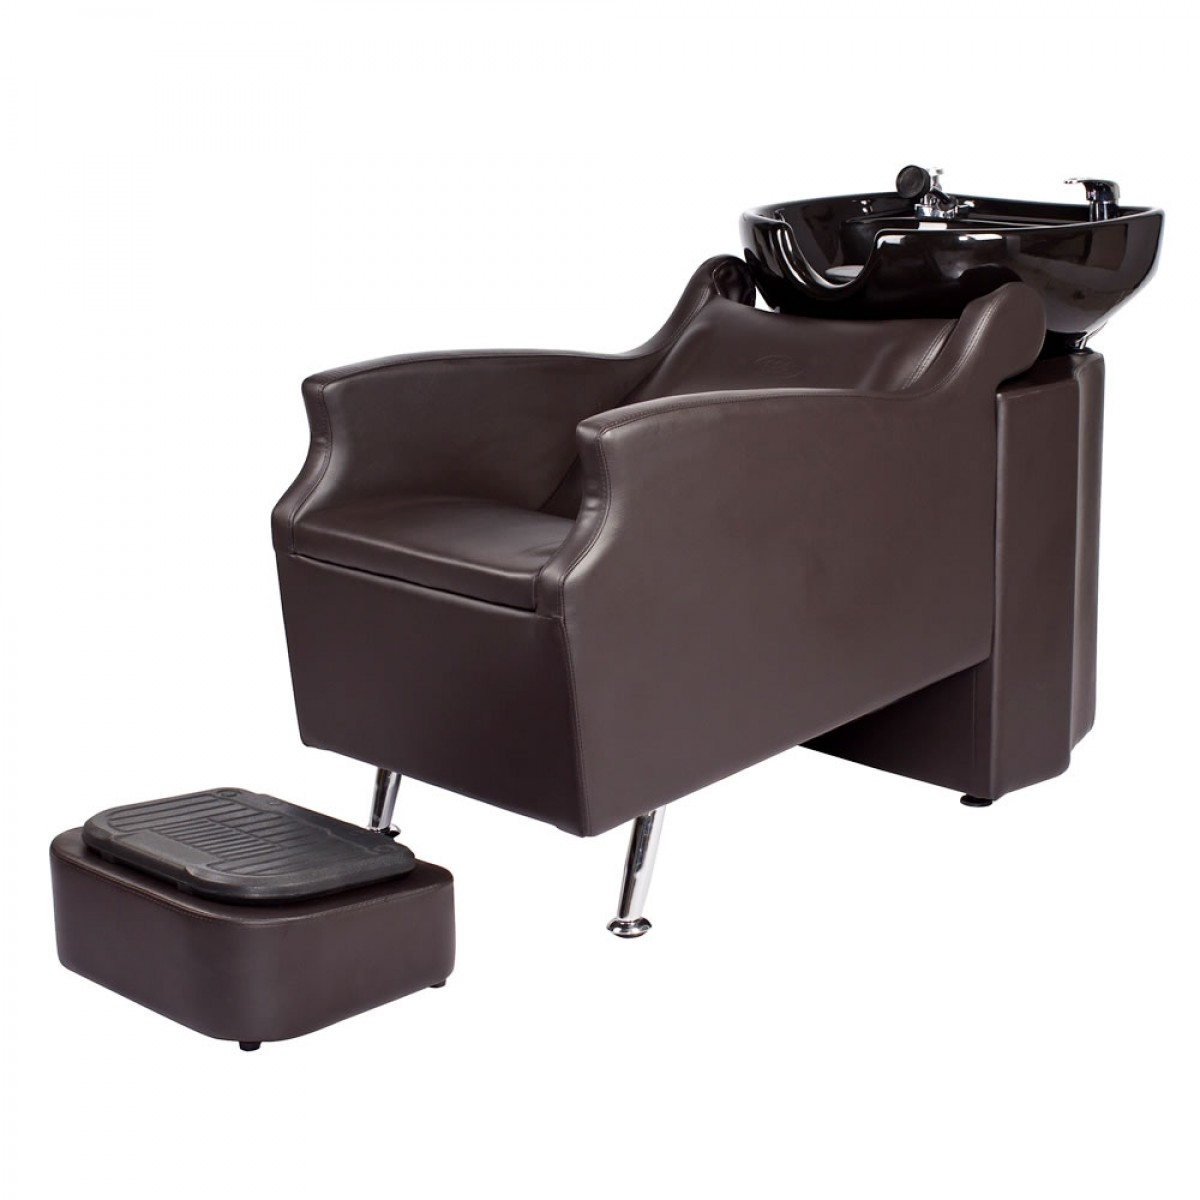 """ISLAND"" Salon Backwash Shampoo Sink, Shampoo Backwash System"